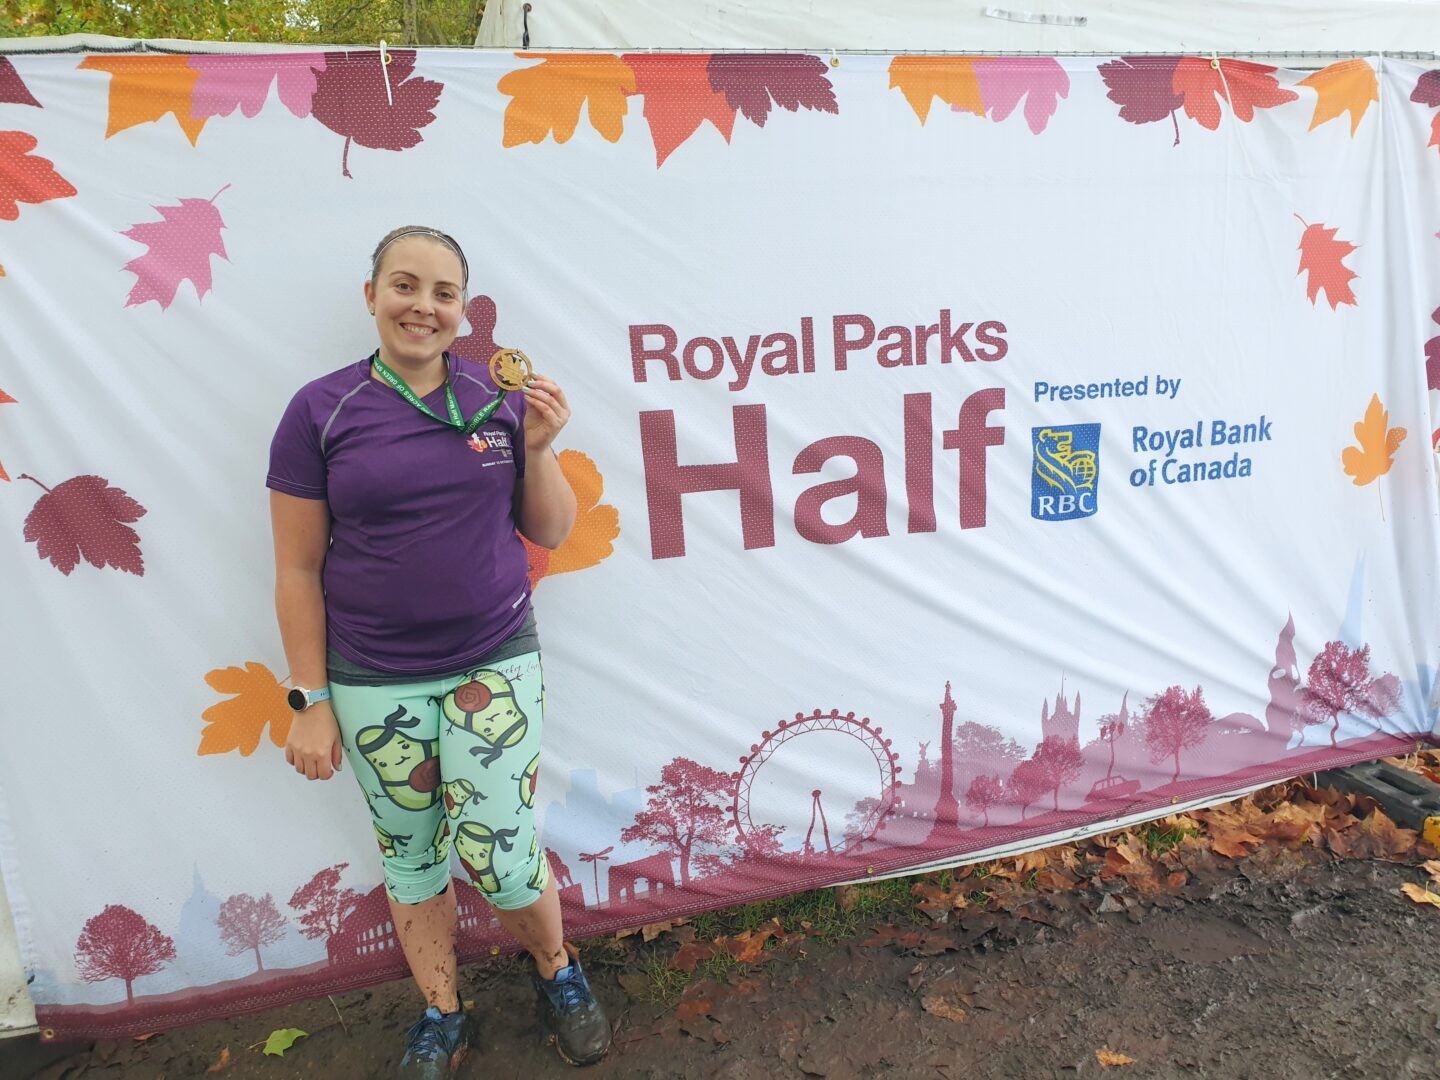 Me in running kit standing in front of Royal Parks Half branding with medal